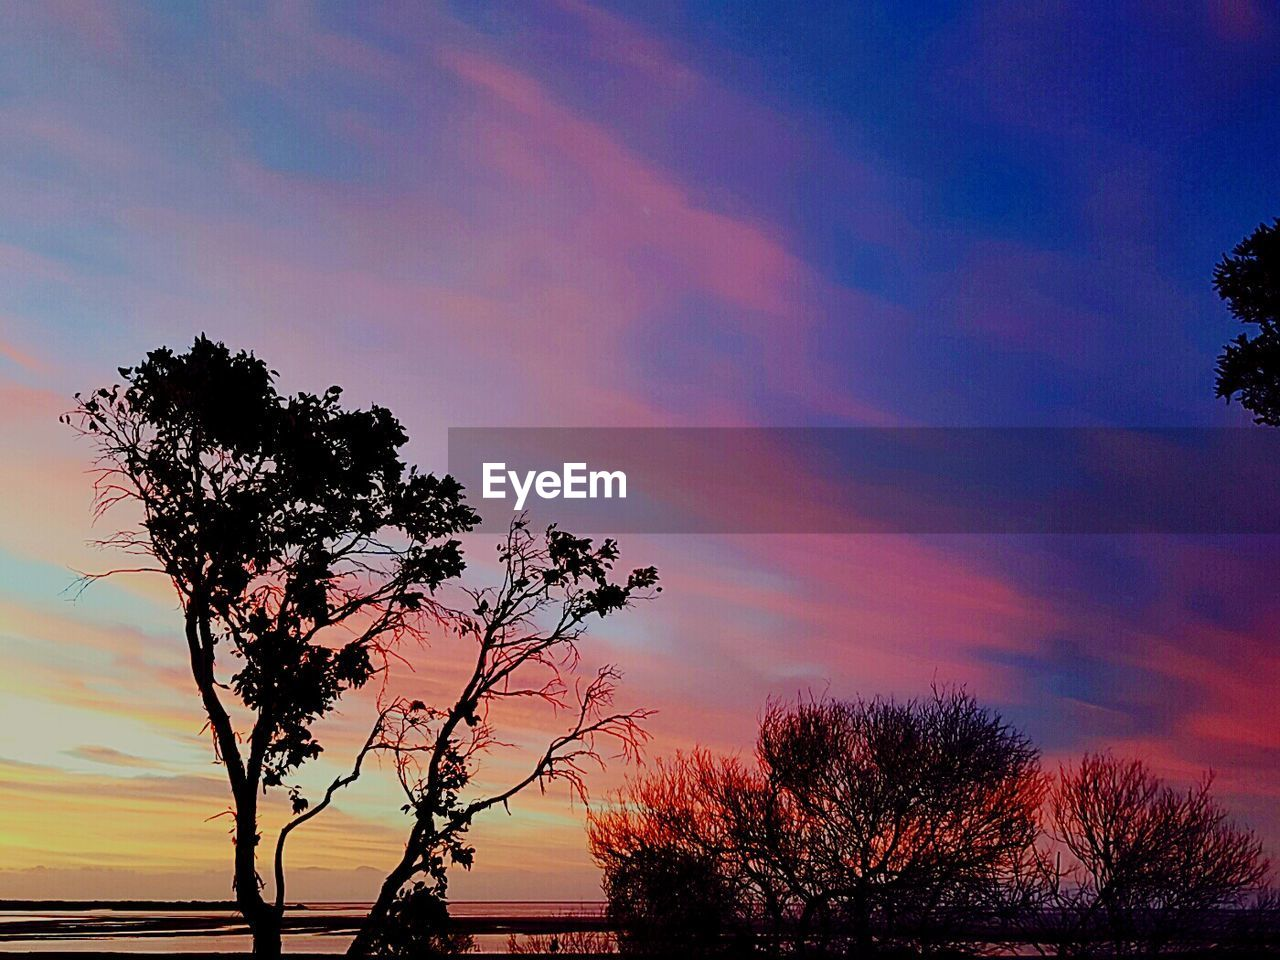 tree, silhouette, sunset, sky, nature, beauty in nature, scenics, tranquil scene, tranquility, no people, growth, outdoors, branch, landscape, lone, day